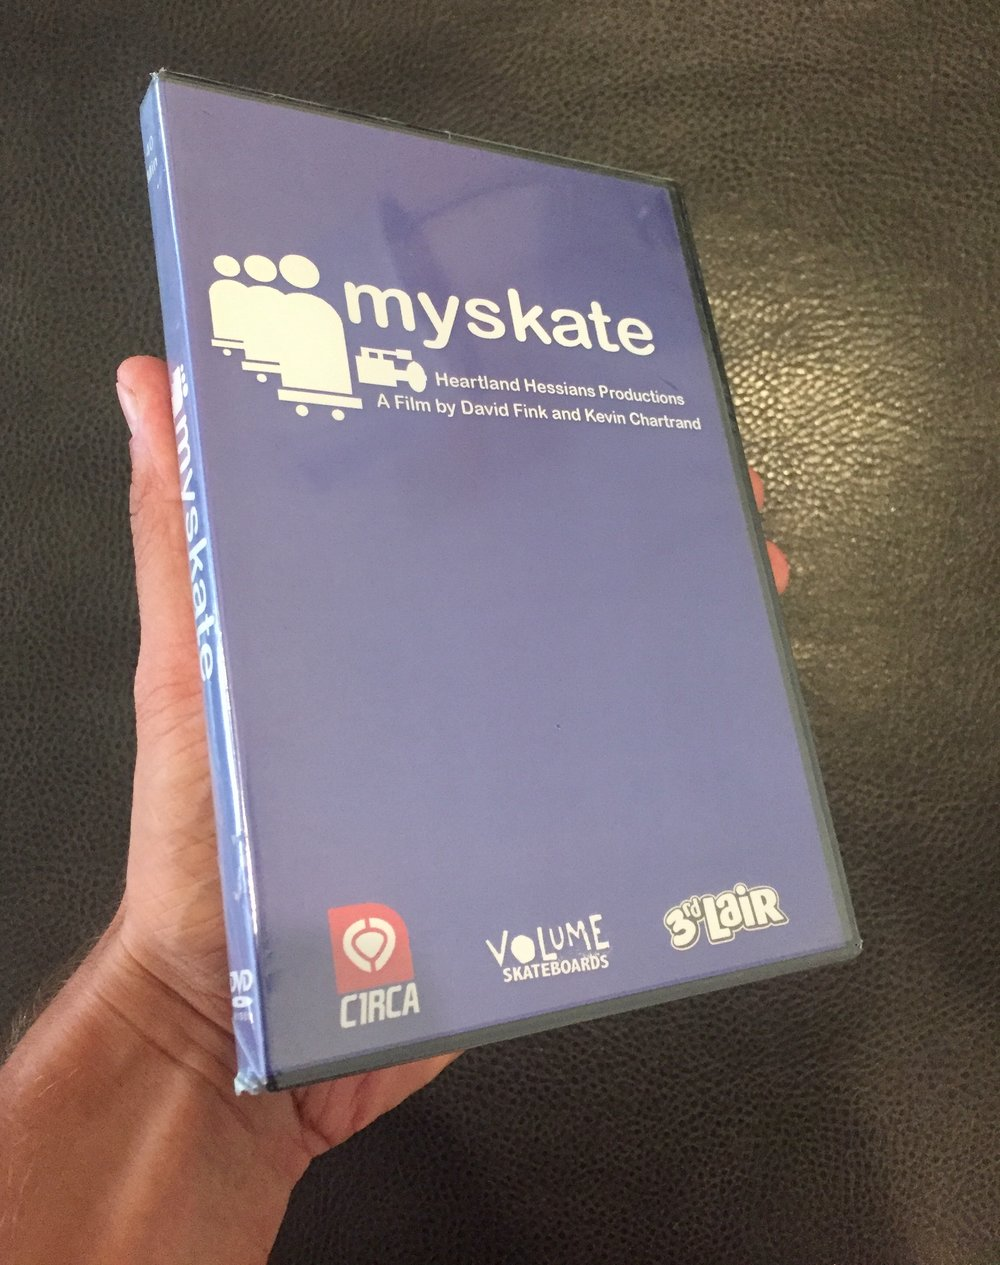 An original copy of the video, still sealed in 2017.